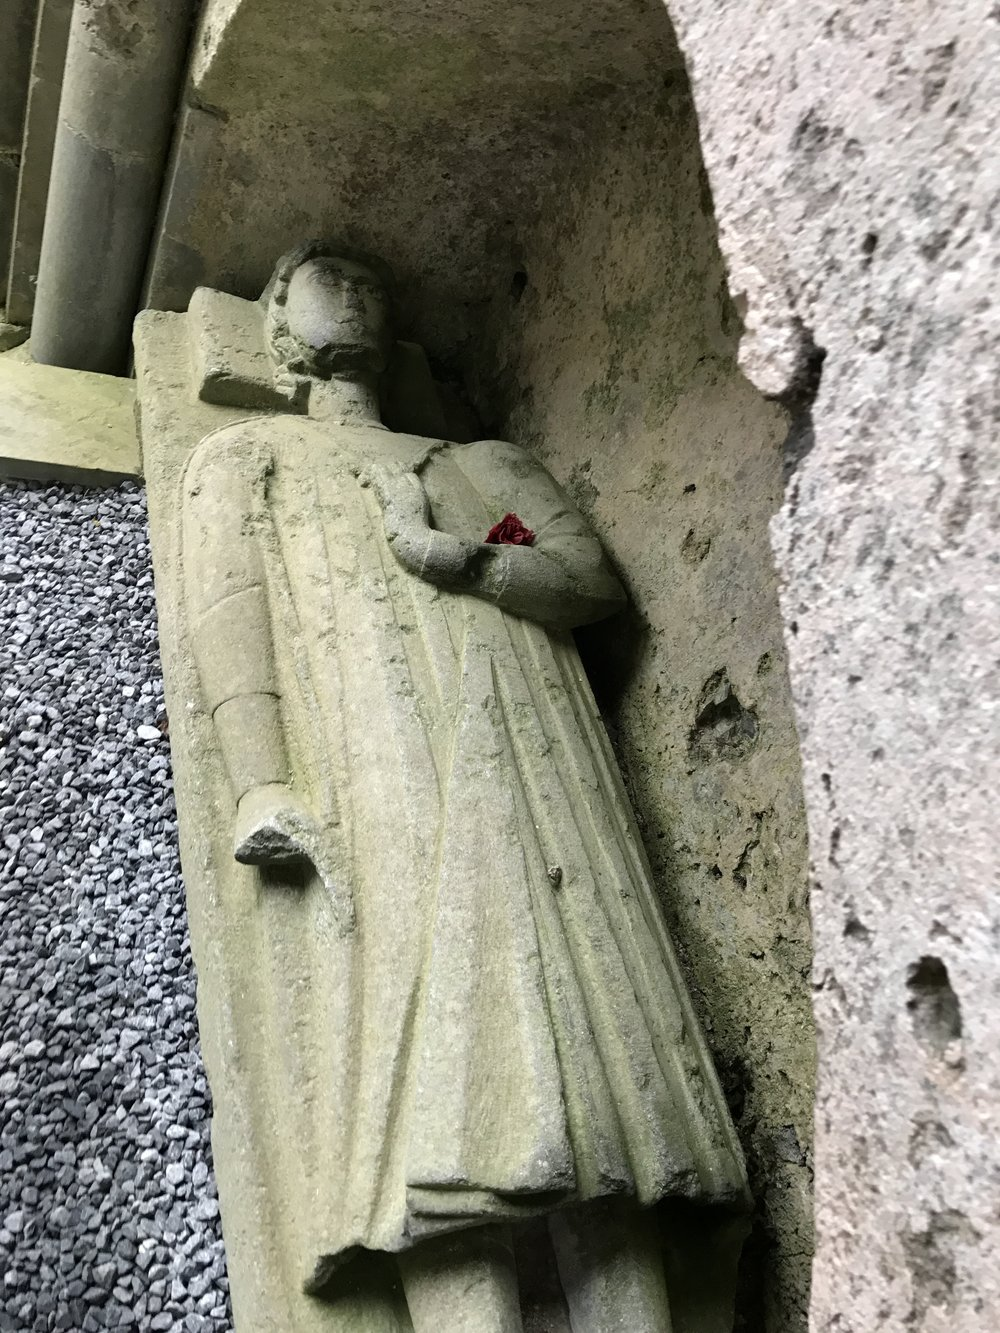 The tomb of Conor O'Brien, who played a large role in the abbey's construction and history is still well preserved some eight hundred years later.